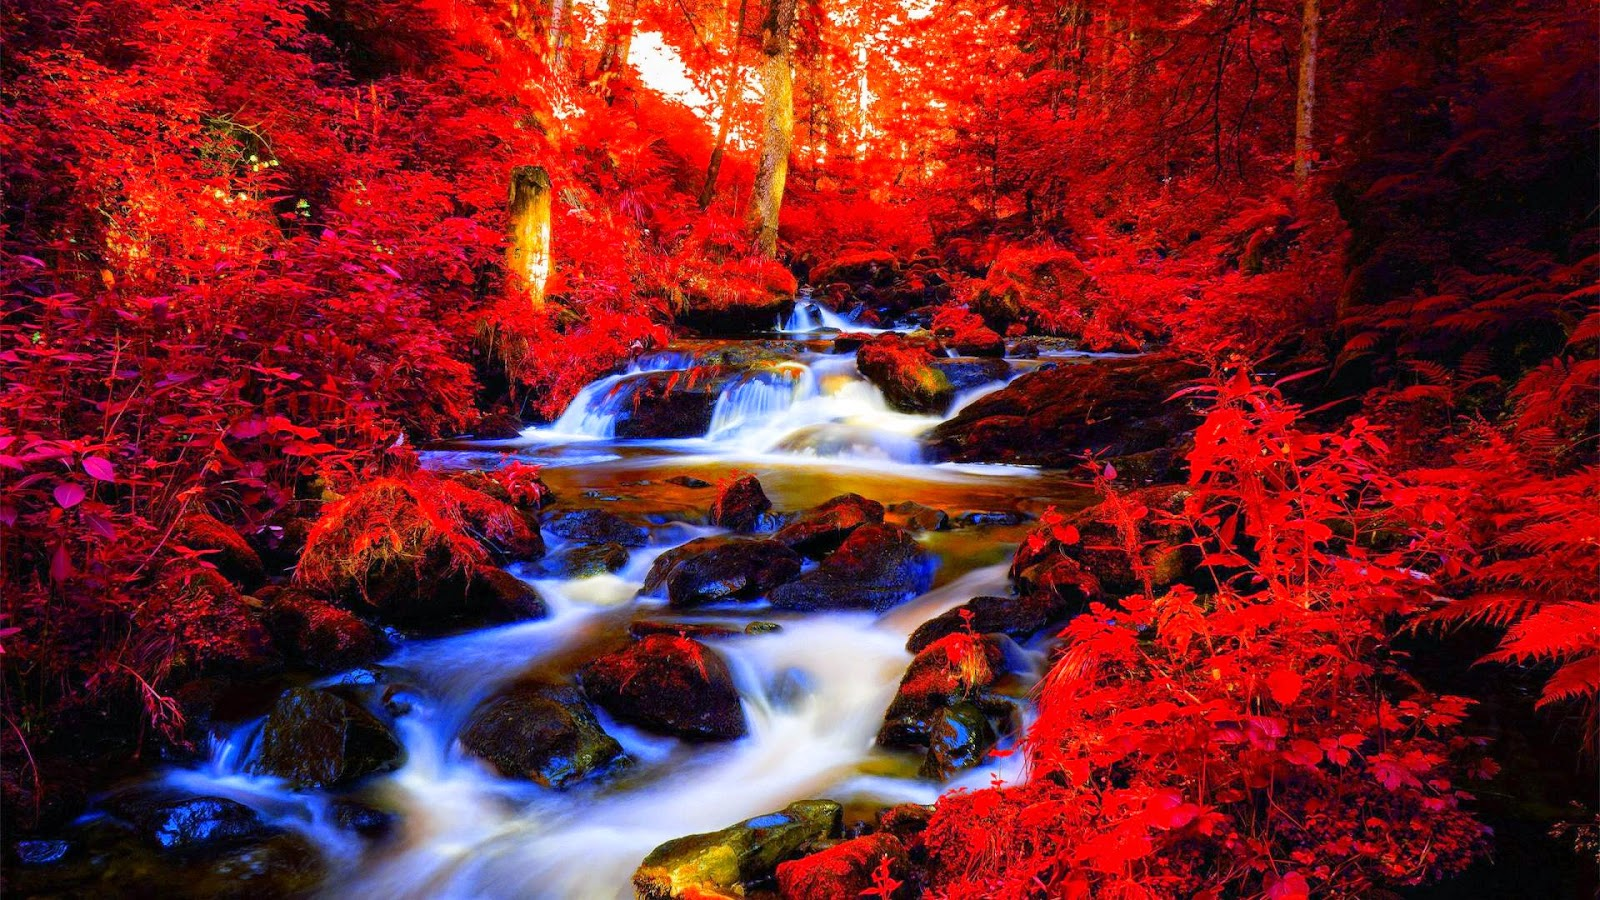 Amazing Red Forest Hd Wallpapers Hyip Bitz Hyip